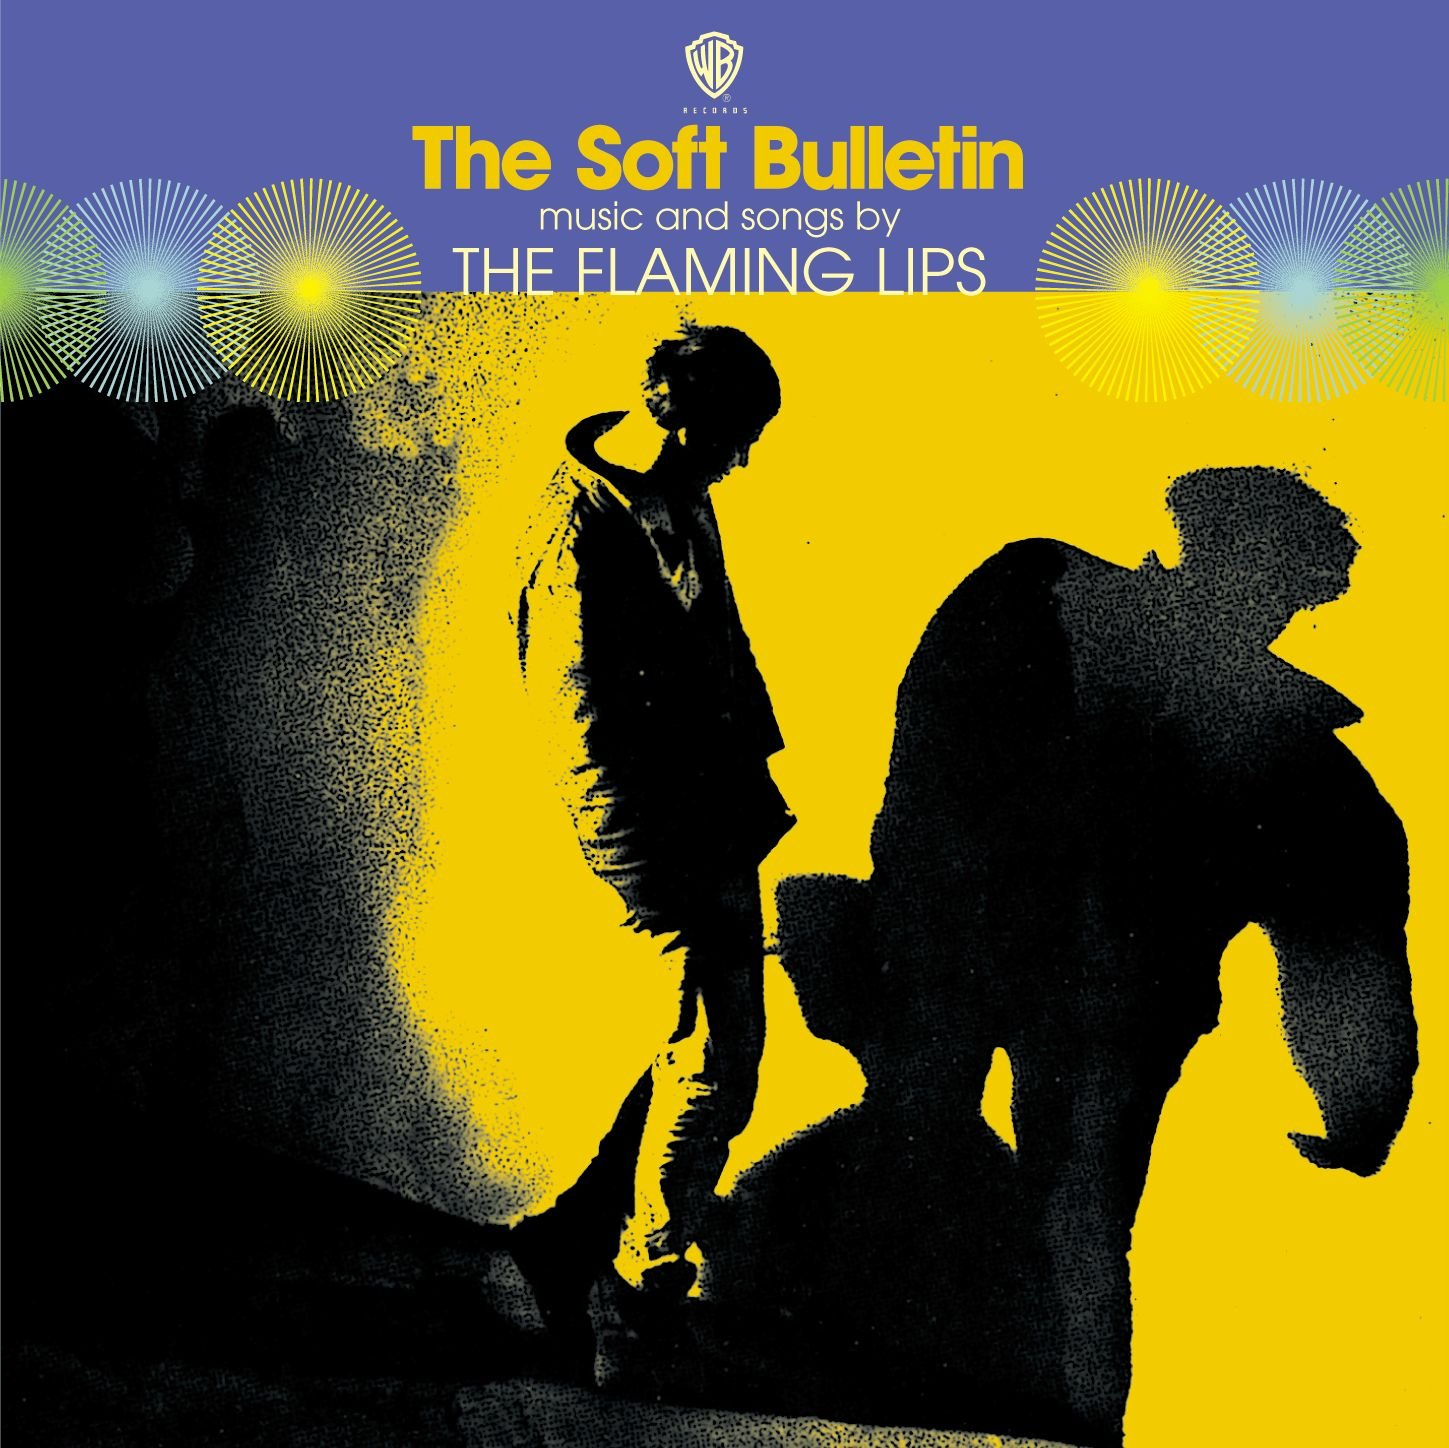 The Flaming Lips - The Soft Bulletin - Amazon.com Music